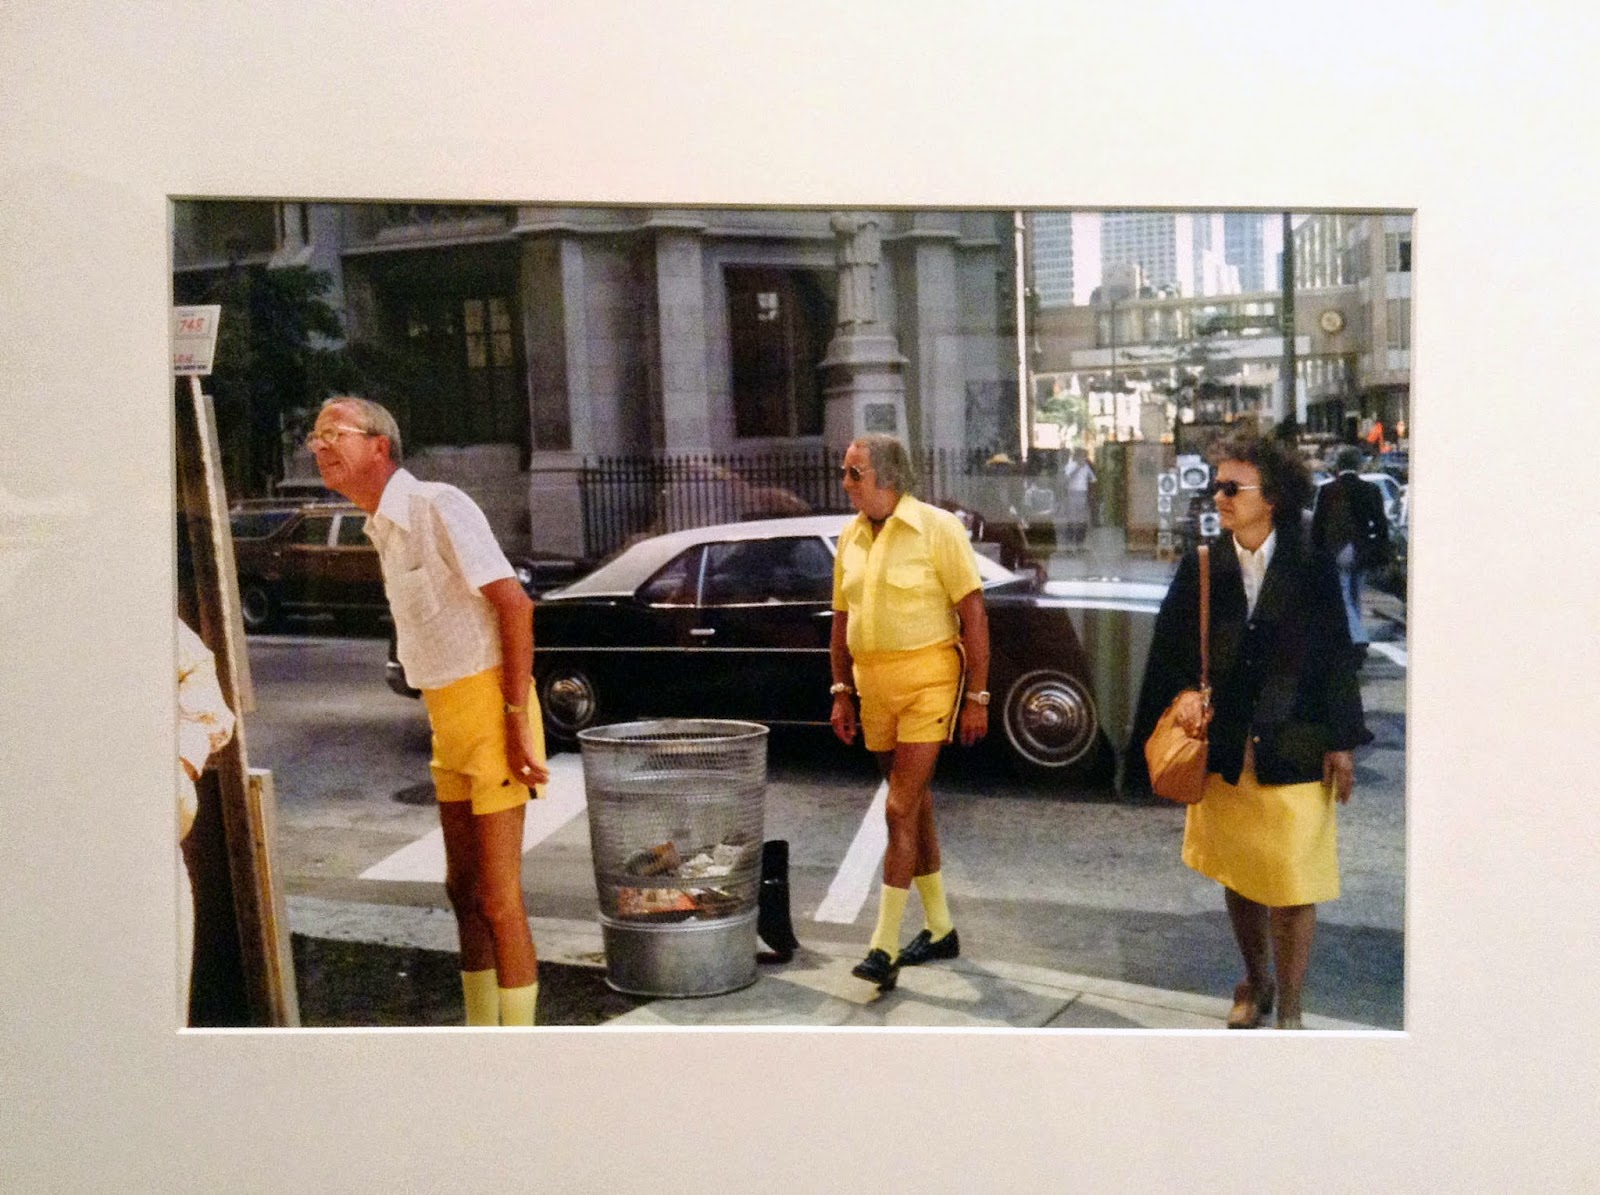 three people in yellow, Chicago, IL, 1975